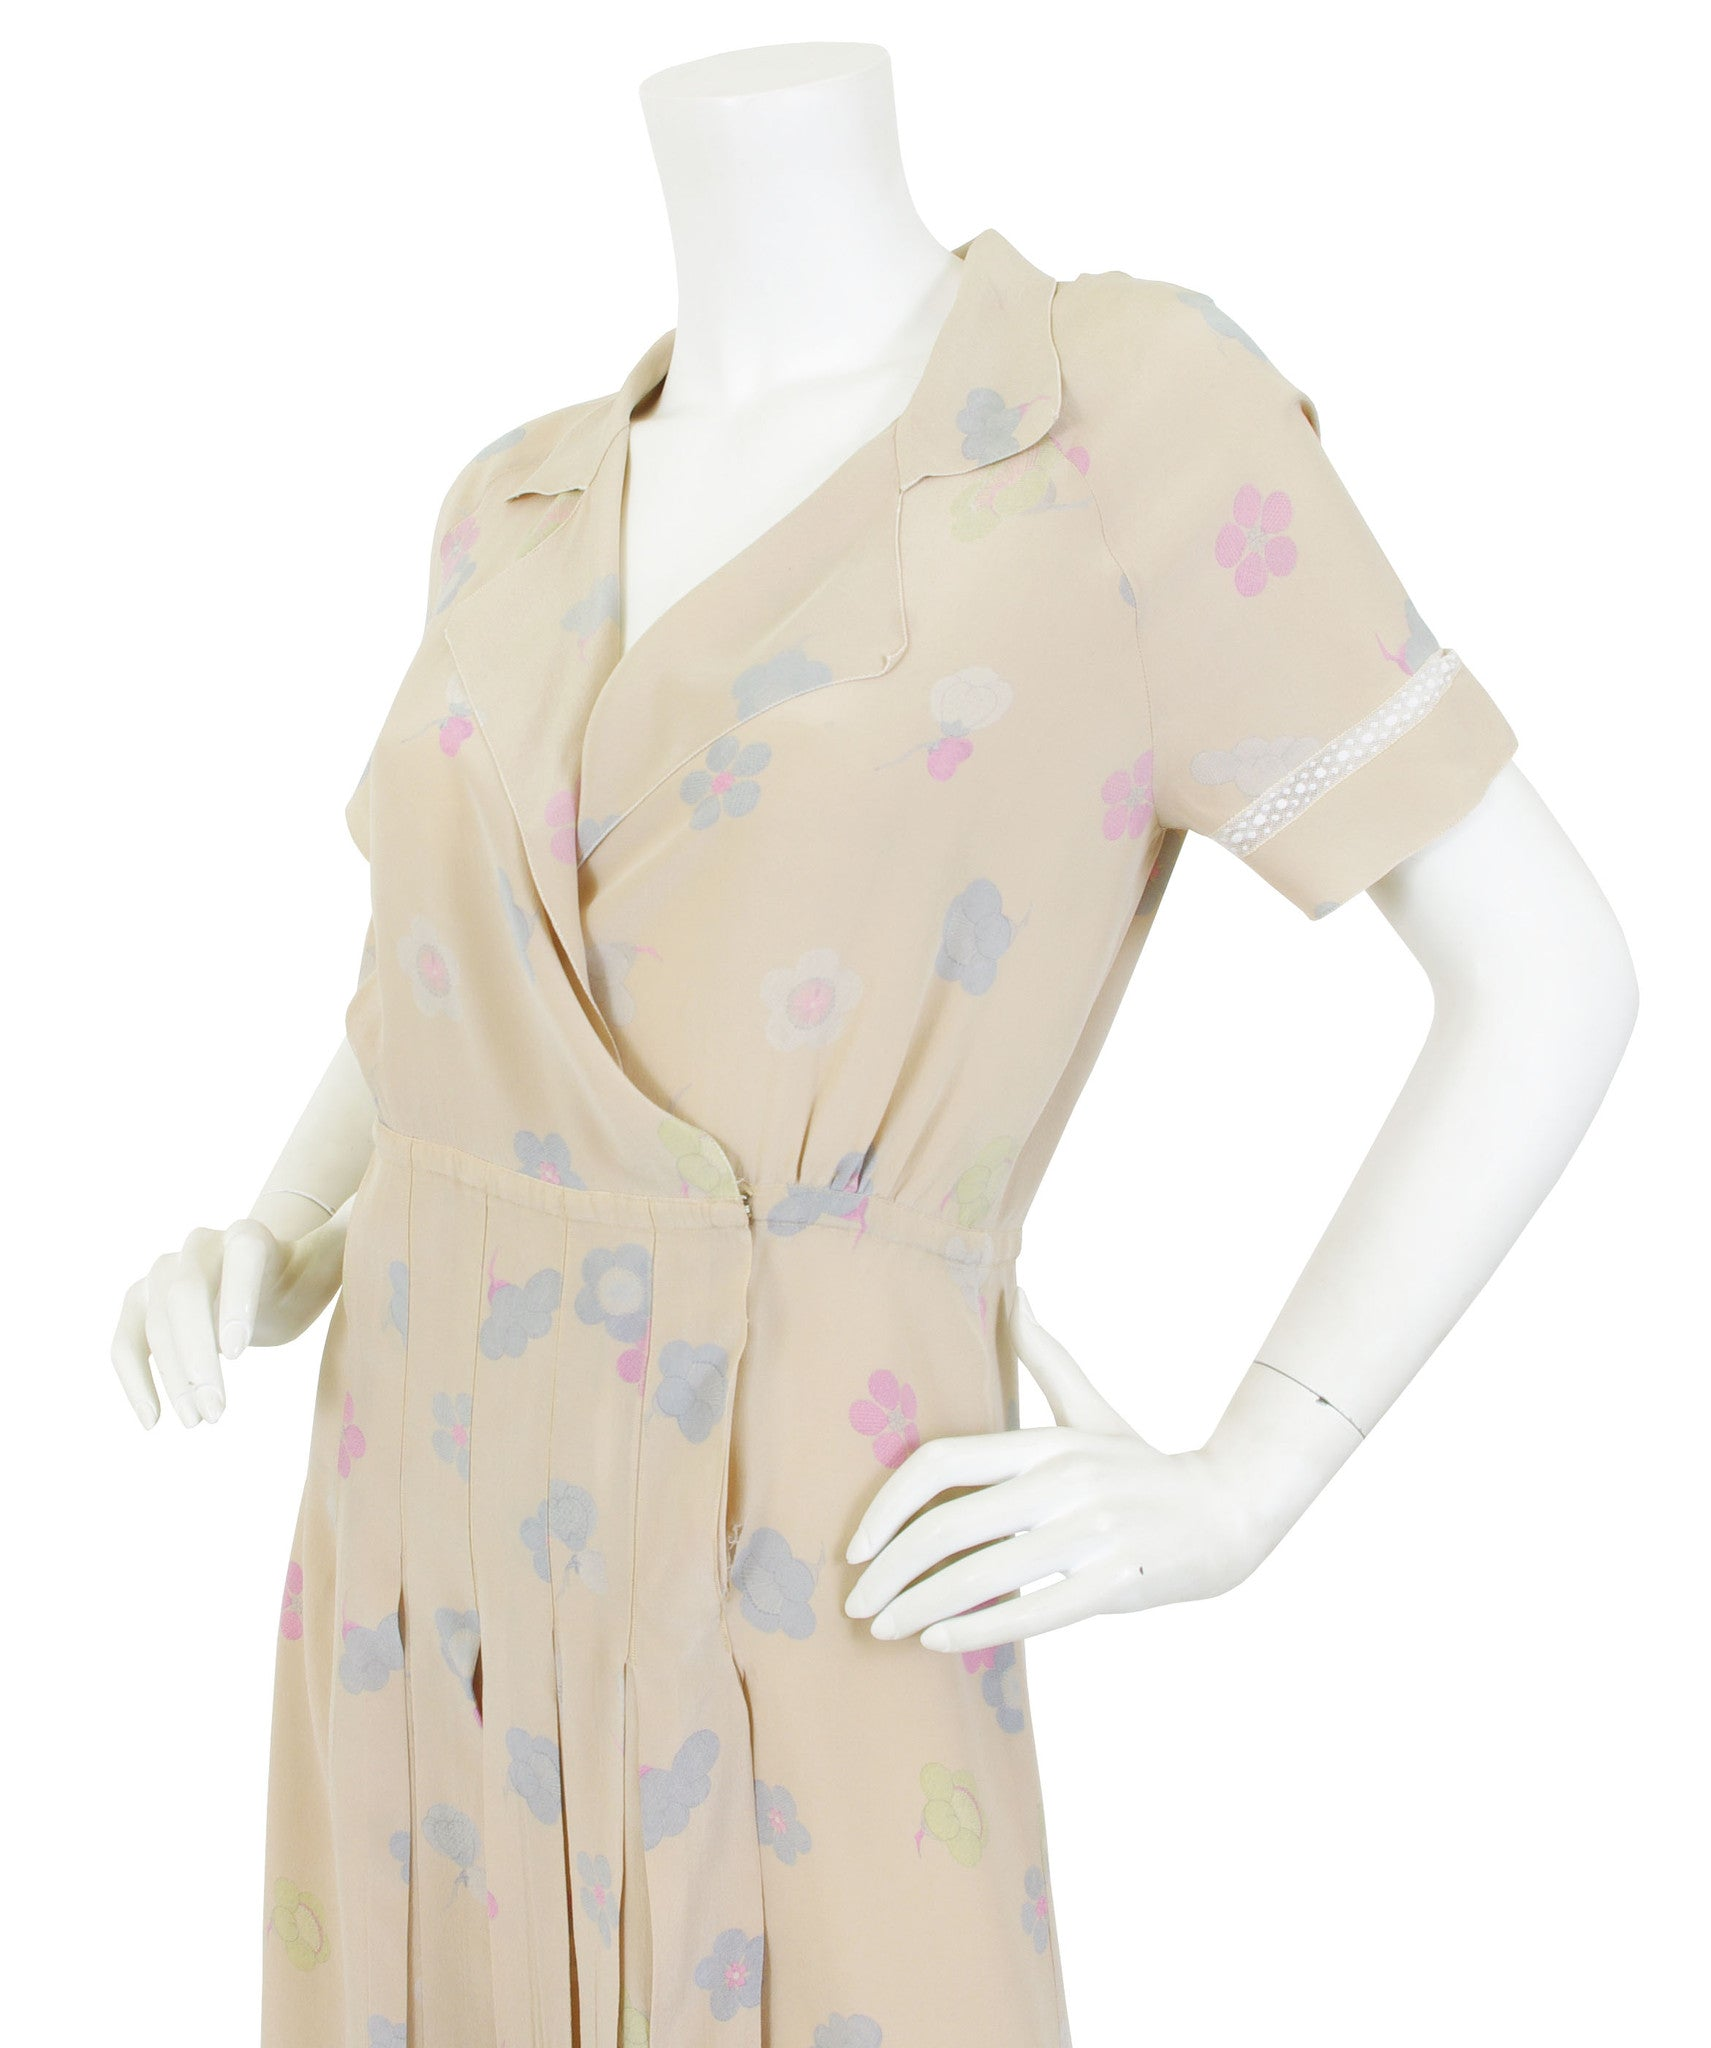 1970's Floral Silk Lace Inset Dress by Karl Lagerfeld